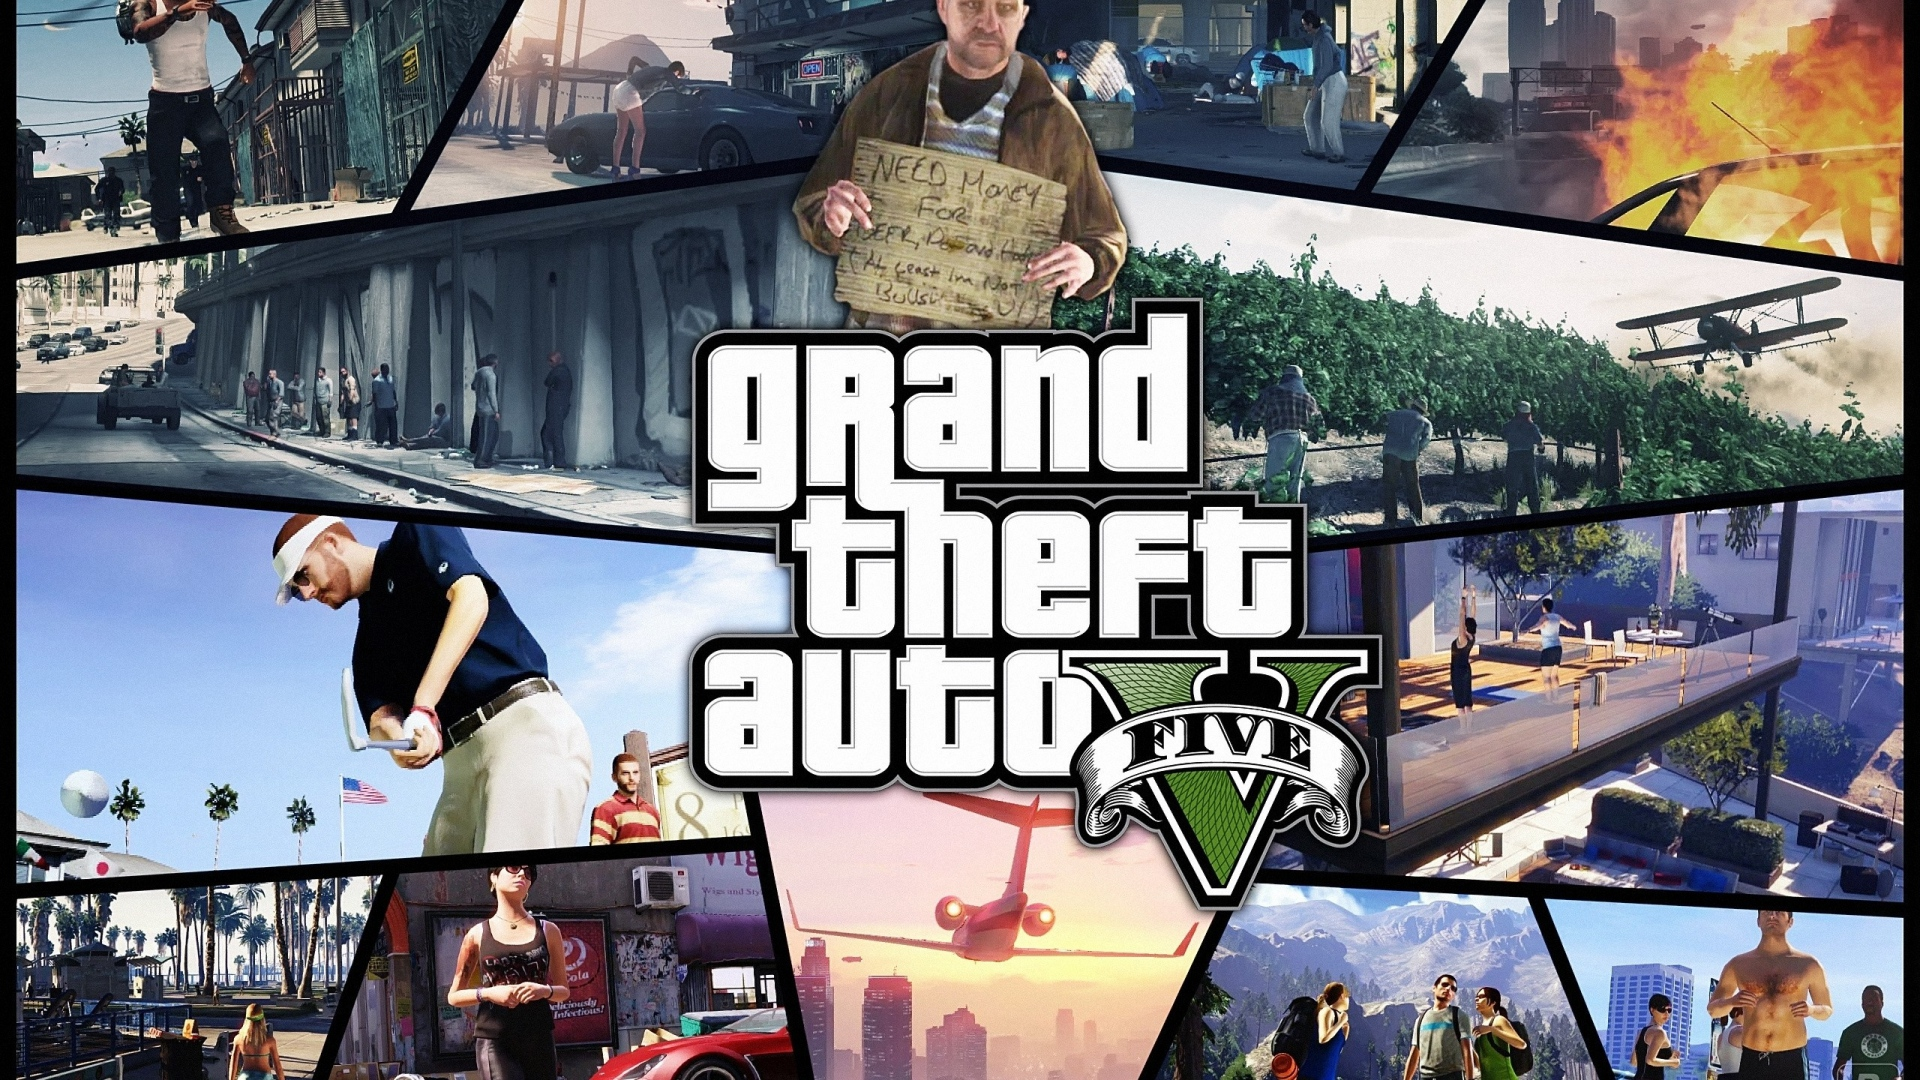 download wallpaper 1920x1080 gta, grand theft auto 5, photos, shots